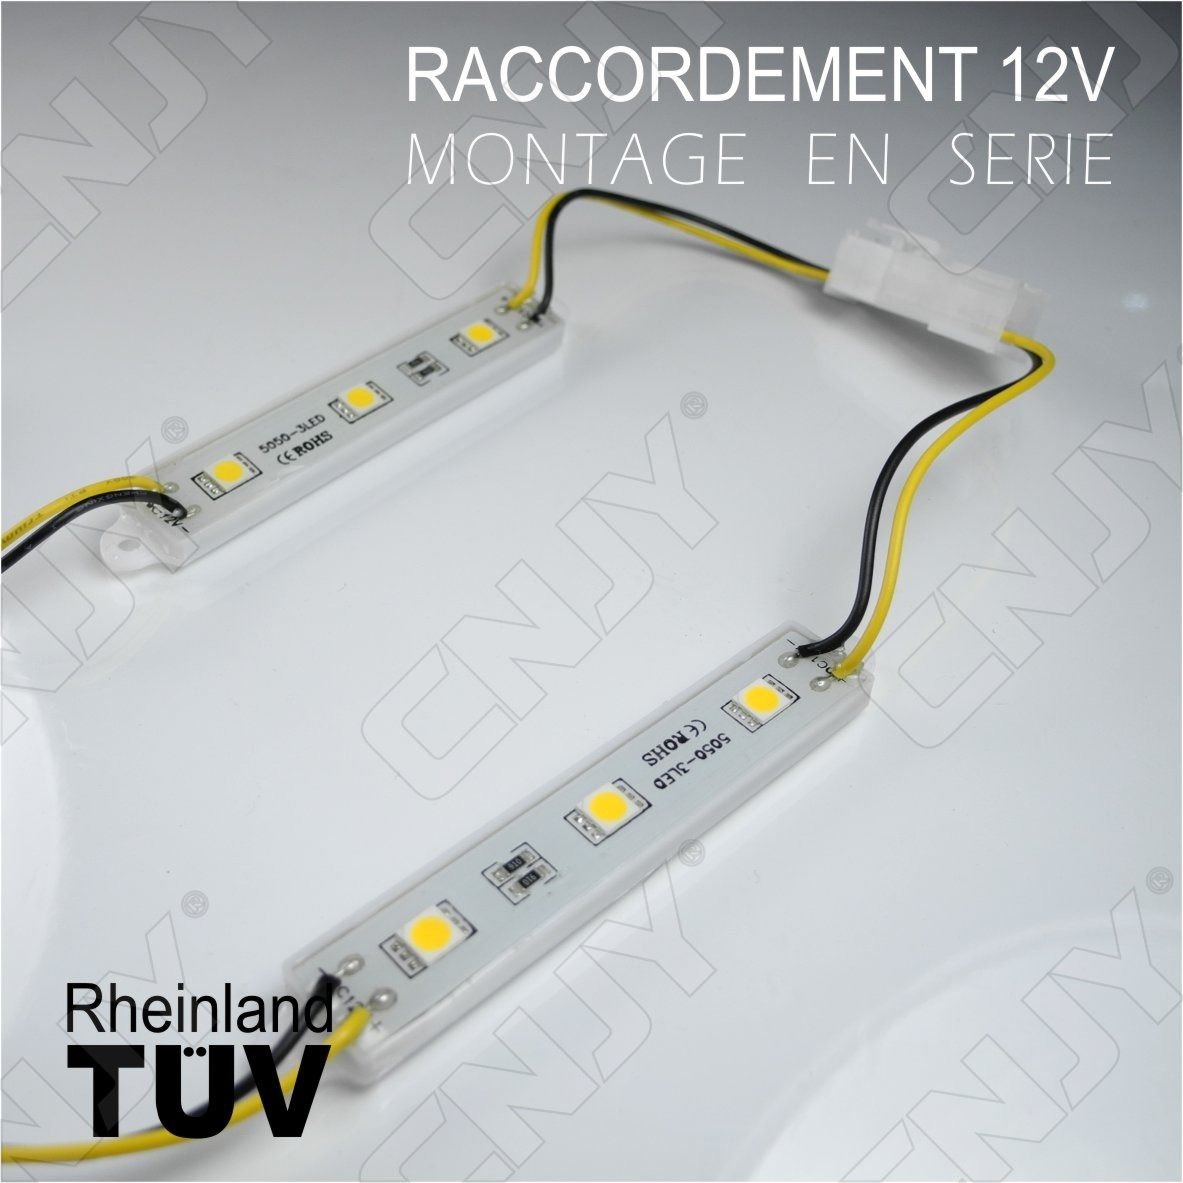 module,led,cable,smd,5050,blanc,froid,chaud,bleu,rouge,vert,orange,rose,violet,jaune,rgb,etanche,ip68,pour,marquage,publicitaire,enseigne,lumineuse,tuning,decoration,12V,DC